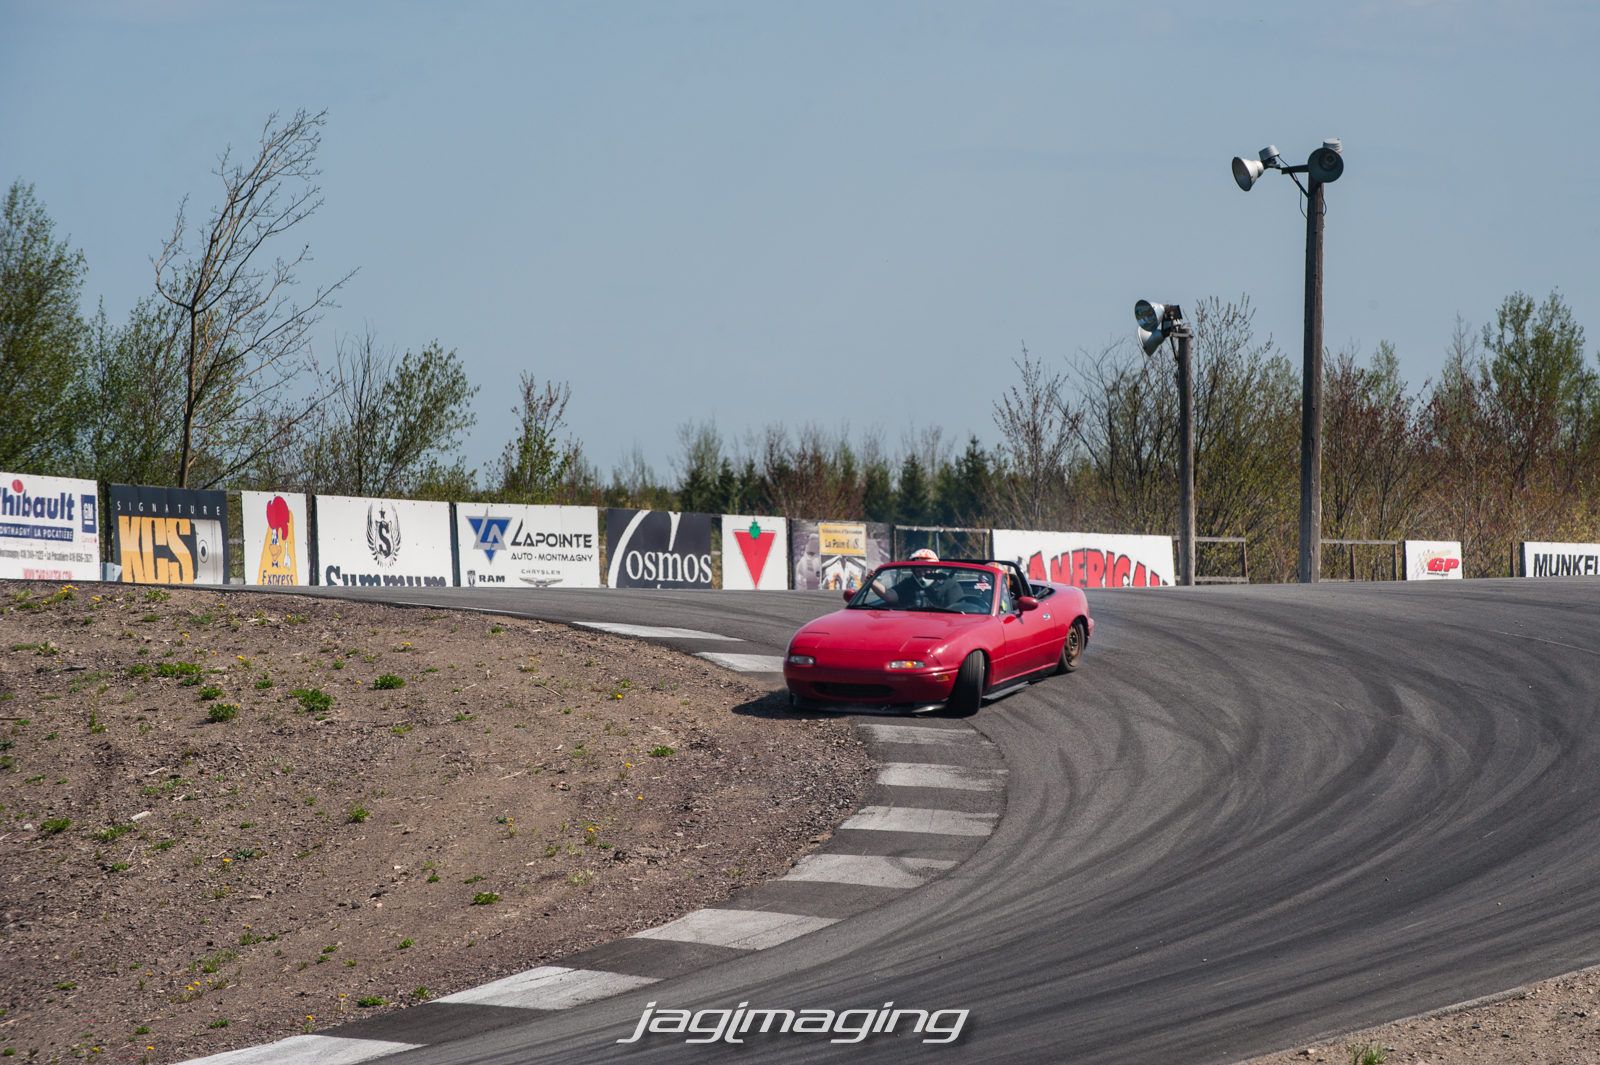 Little Miata about to drop a tire coming down.